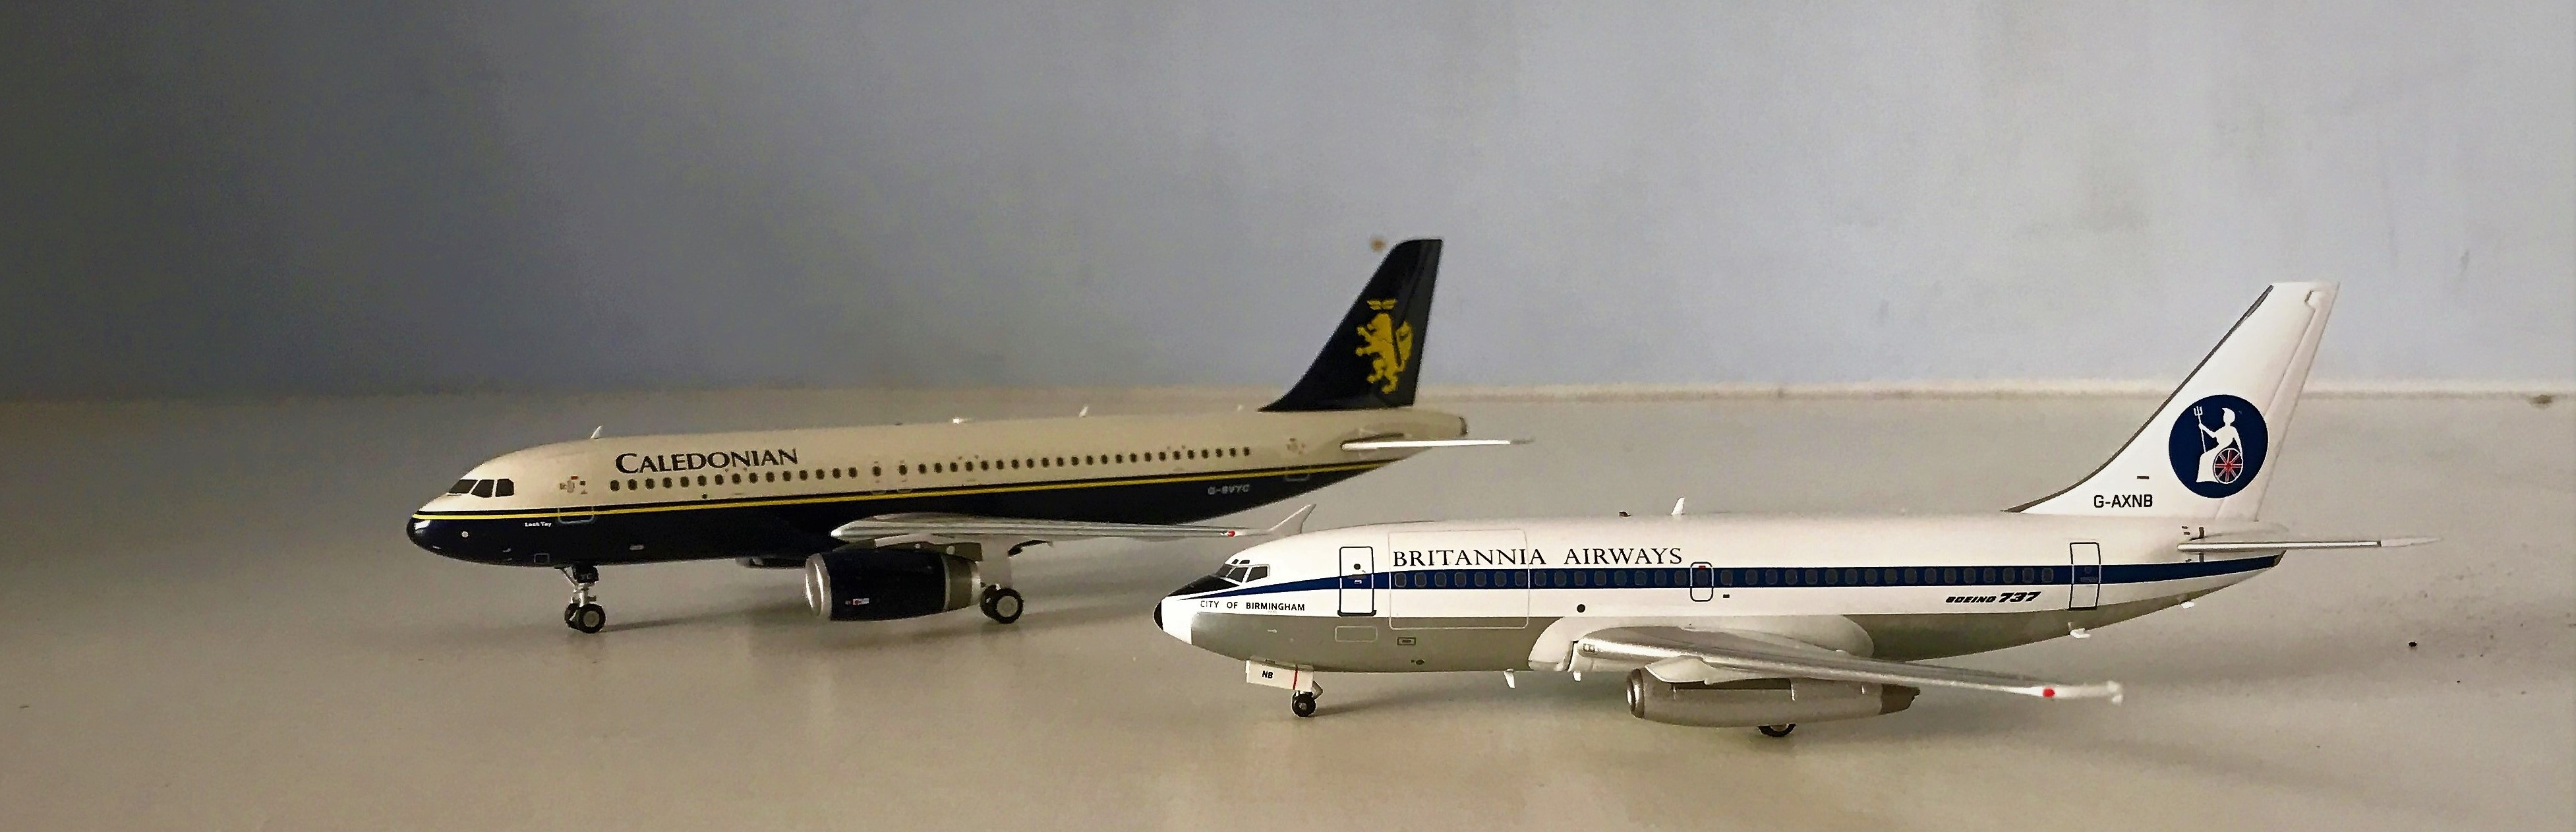 Diecast Model Aeroplanes For Sale Online   Aviation Retail Direct, UK